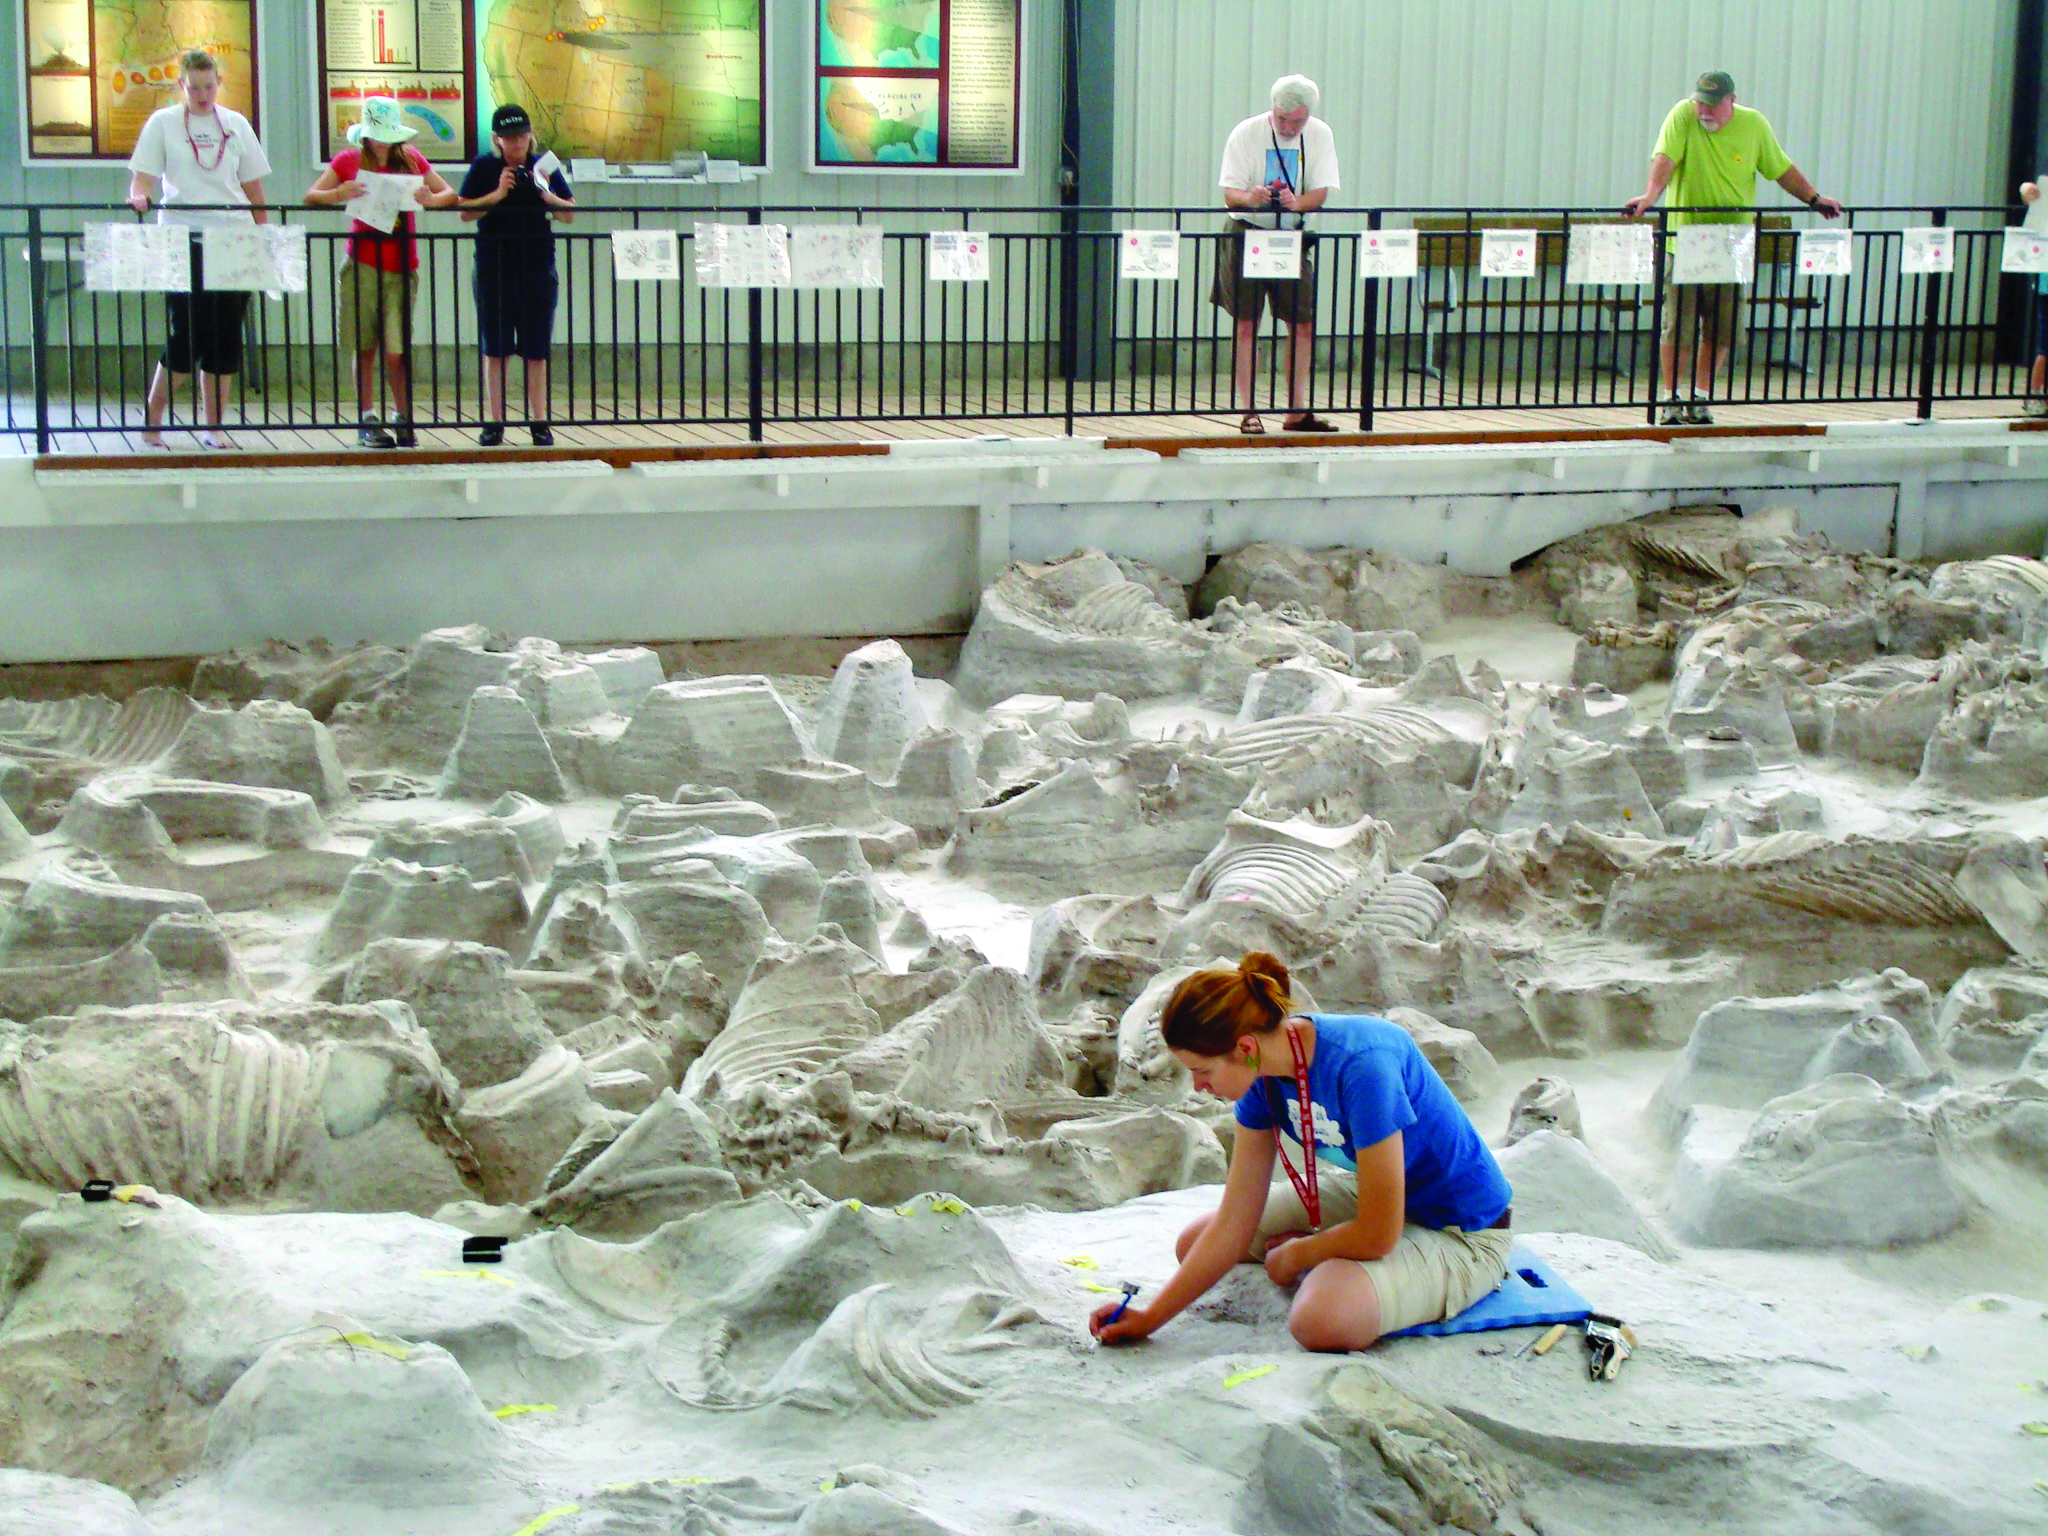 Ashfall S Fossil And Artifact Identification Day Is Aug 9